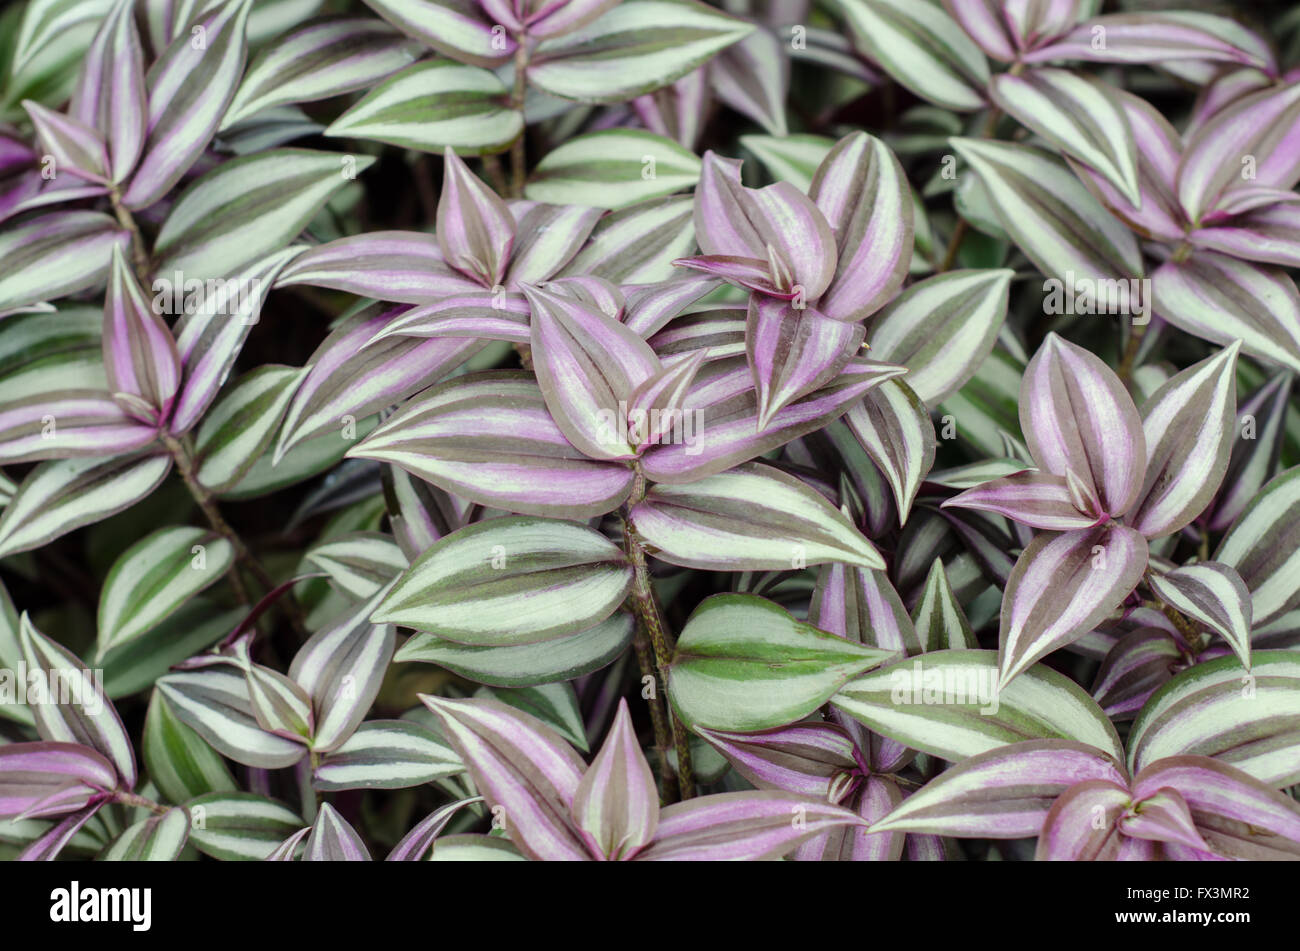 Tradescantia zebrina stock photo royalty free image for Tradescantia zebrina